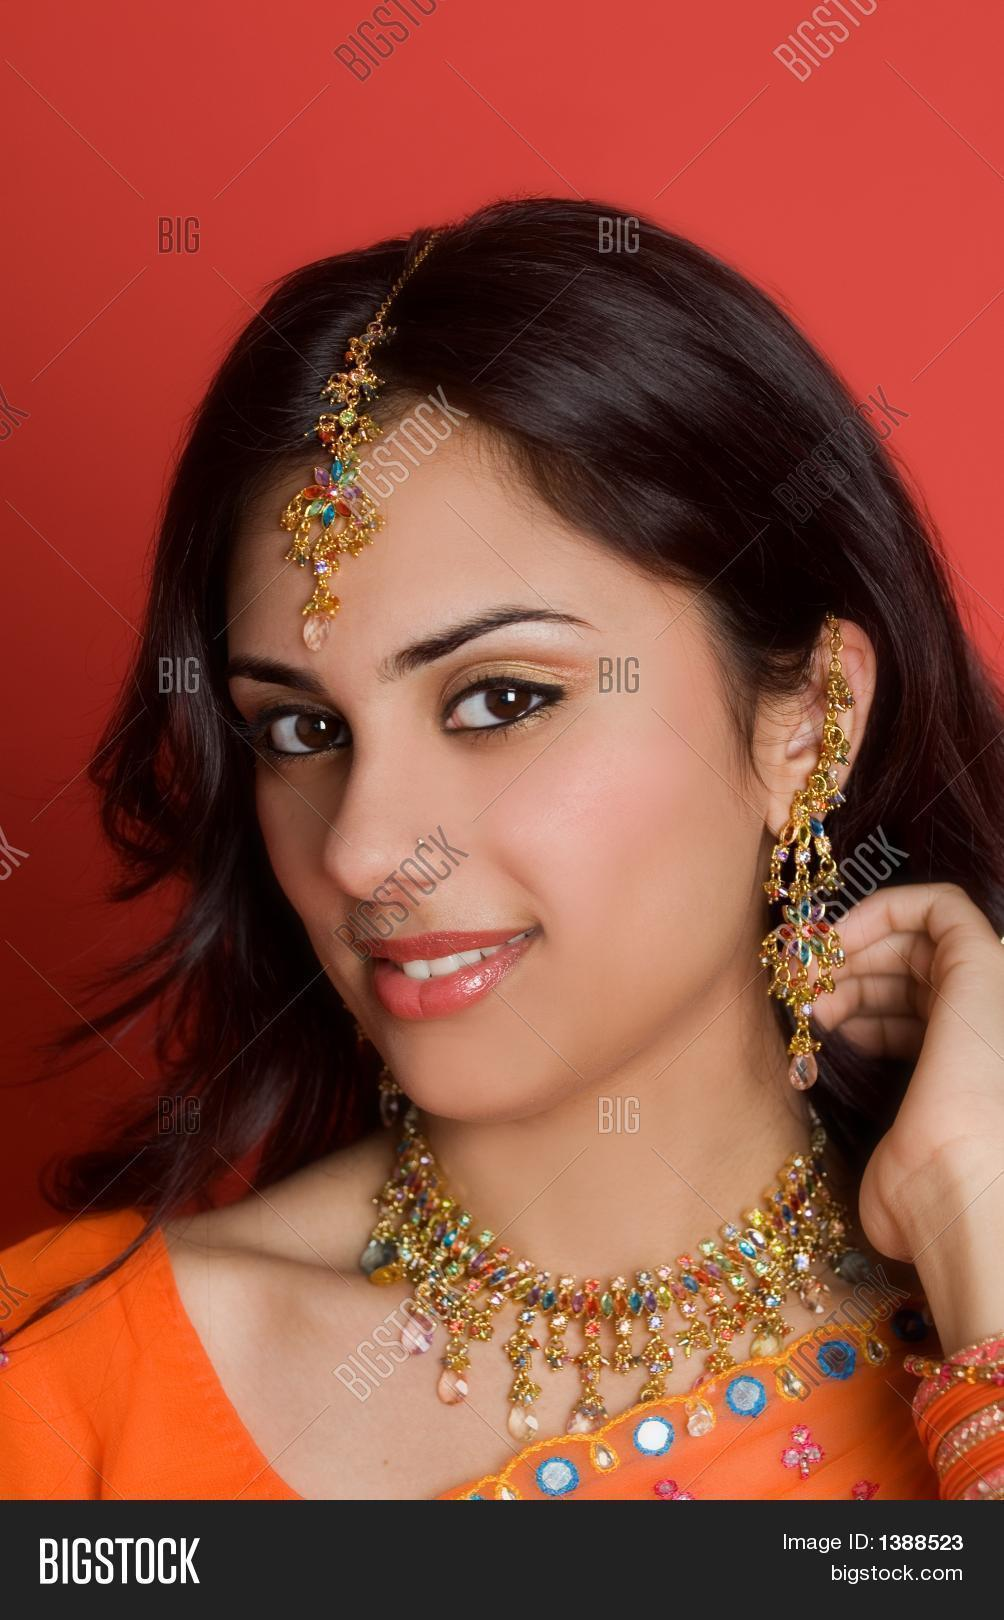 ringle hindu single women Find meetups about indian single women and meet people in your local community who share your interests.